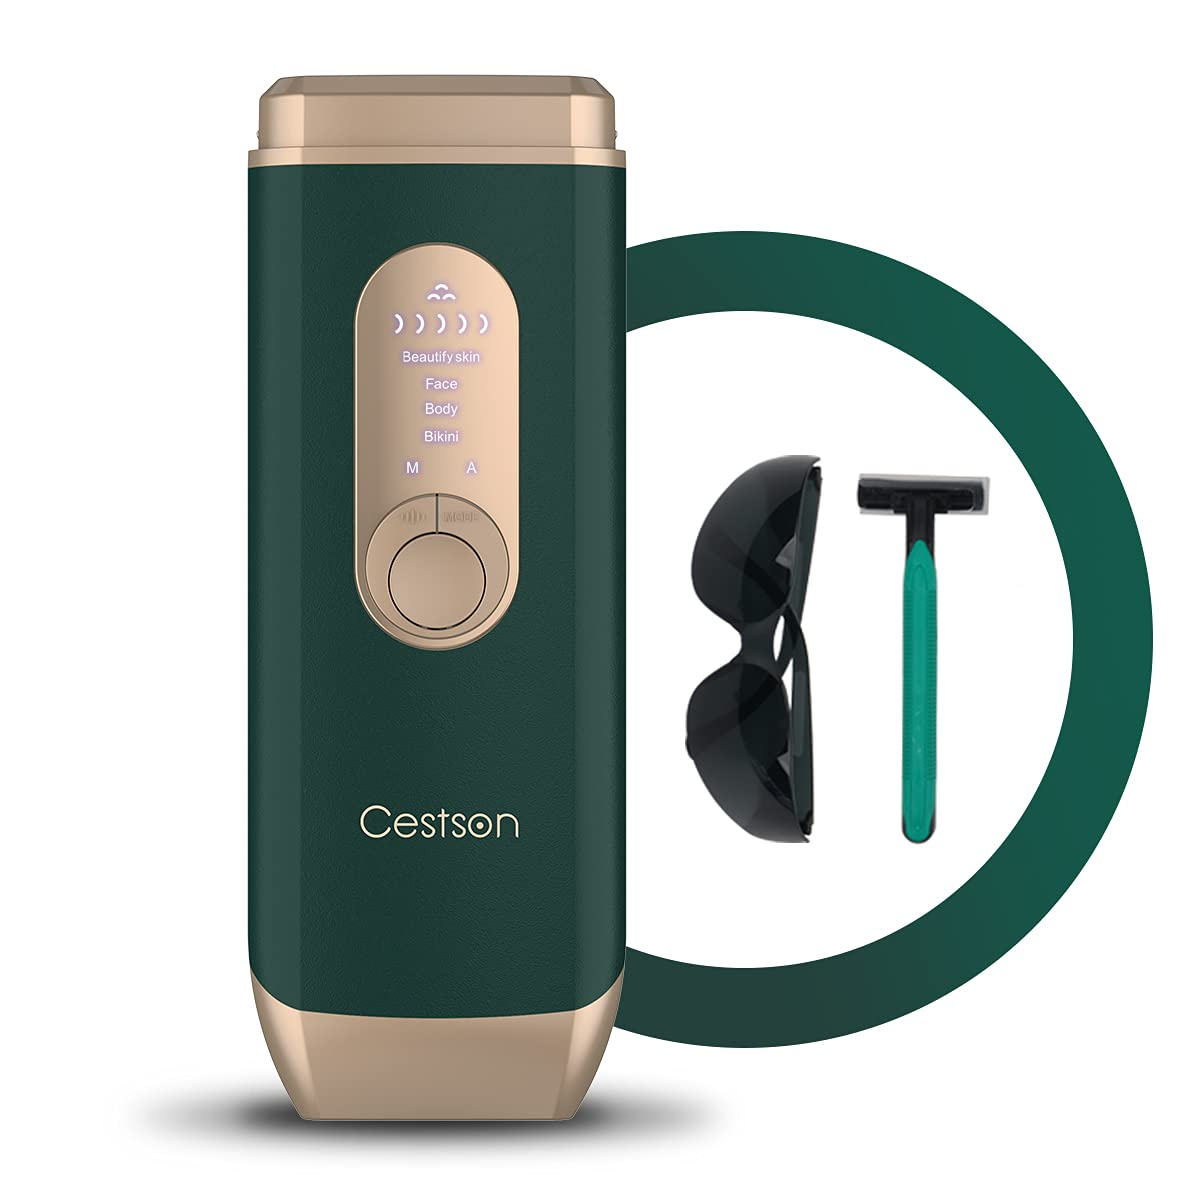 At Home Hair Removal for Women and Men Permanent Painless Hair Remover Device for Facial Legs Arms Armpits and Body